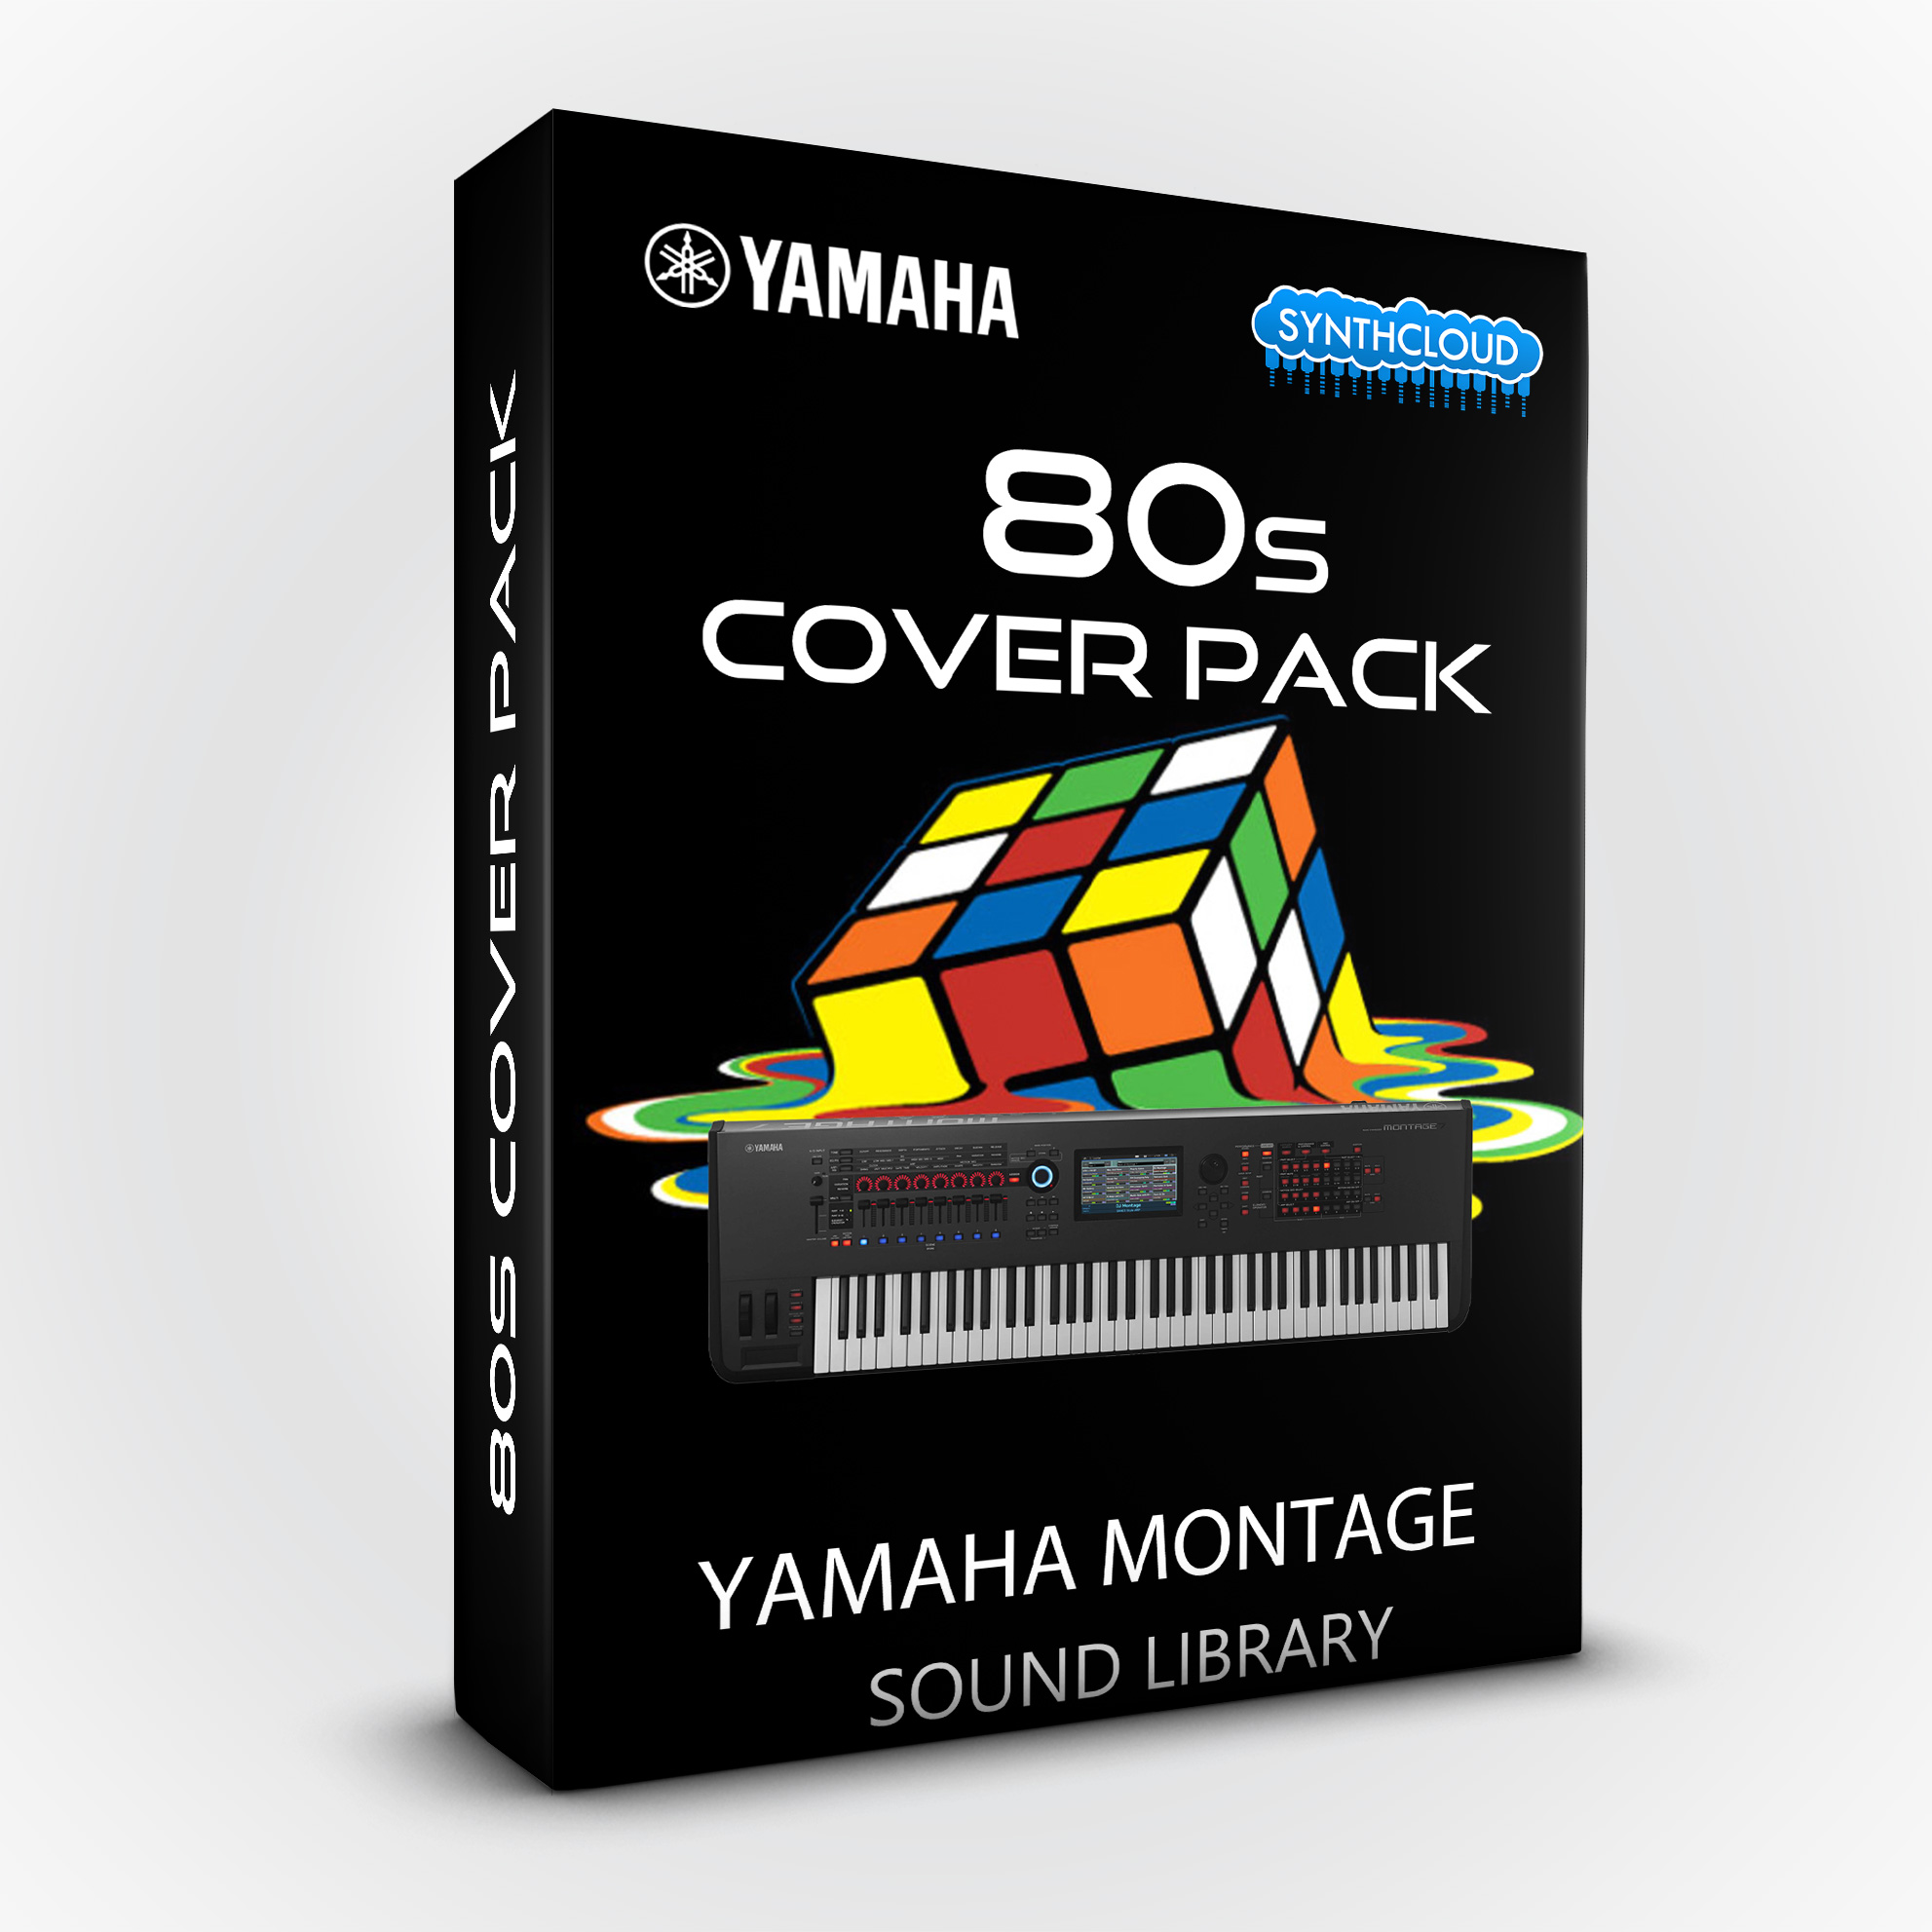 synthcloud_yamaha_montage_80s_s